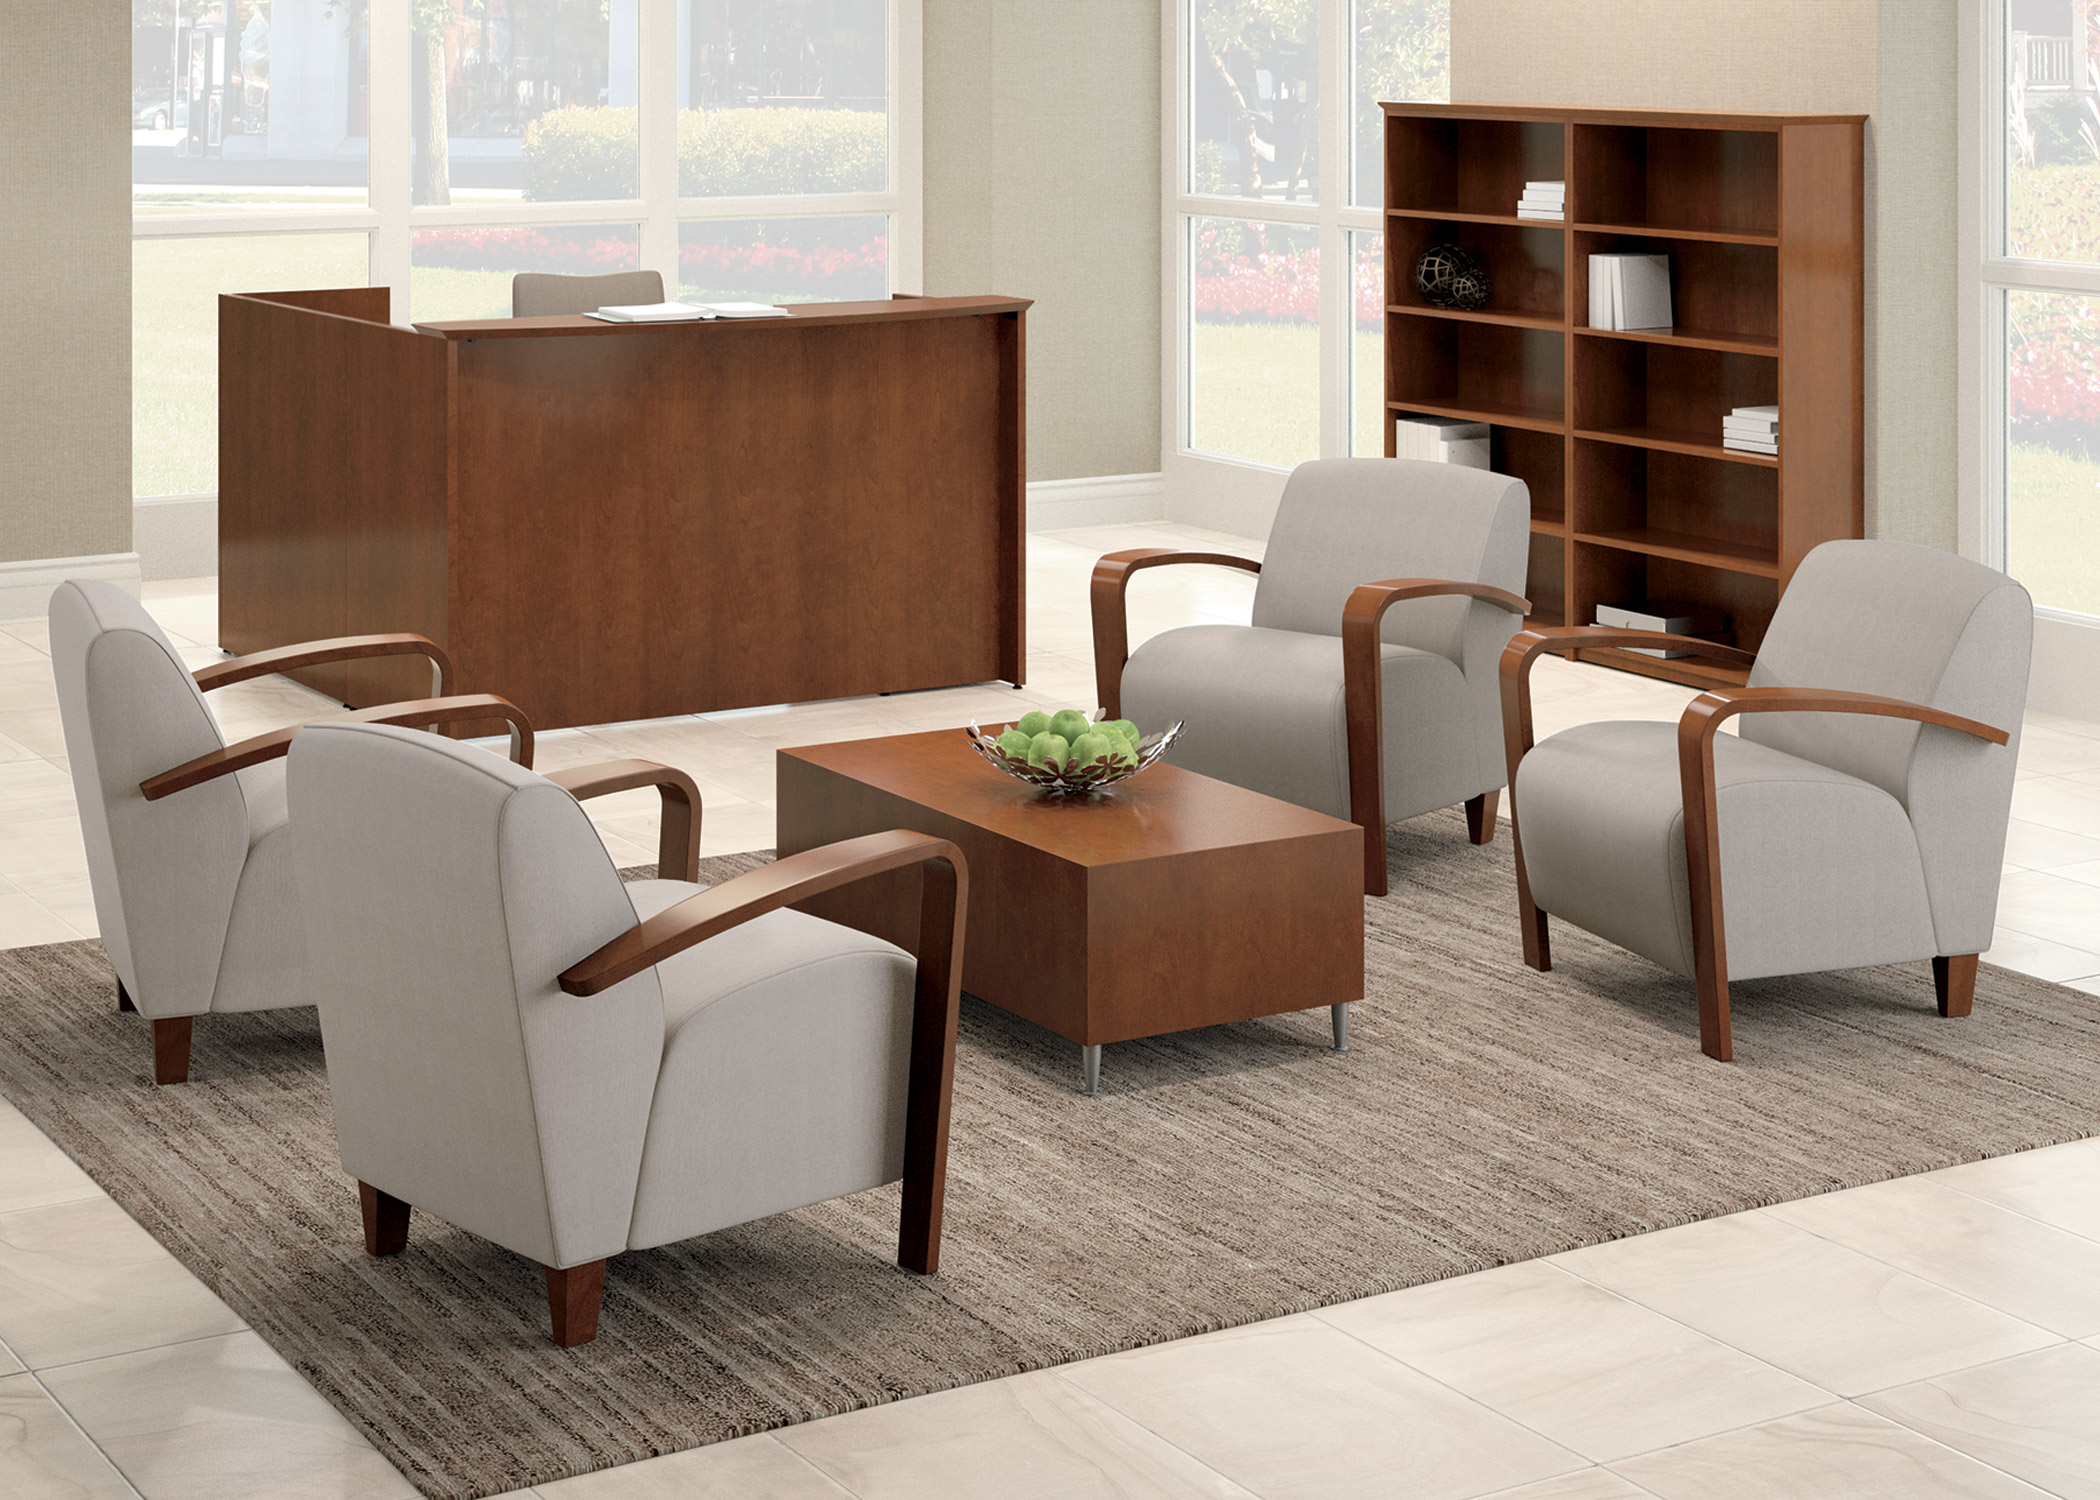 Reno Side Tables Used Office Furniture Near Reno